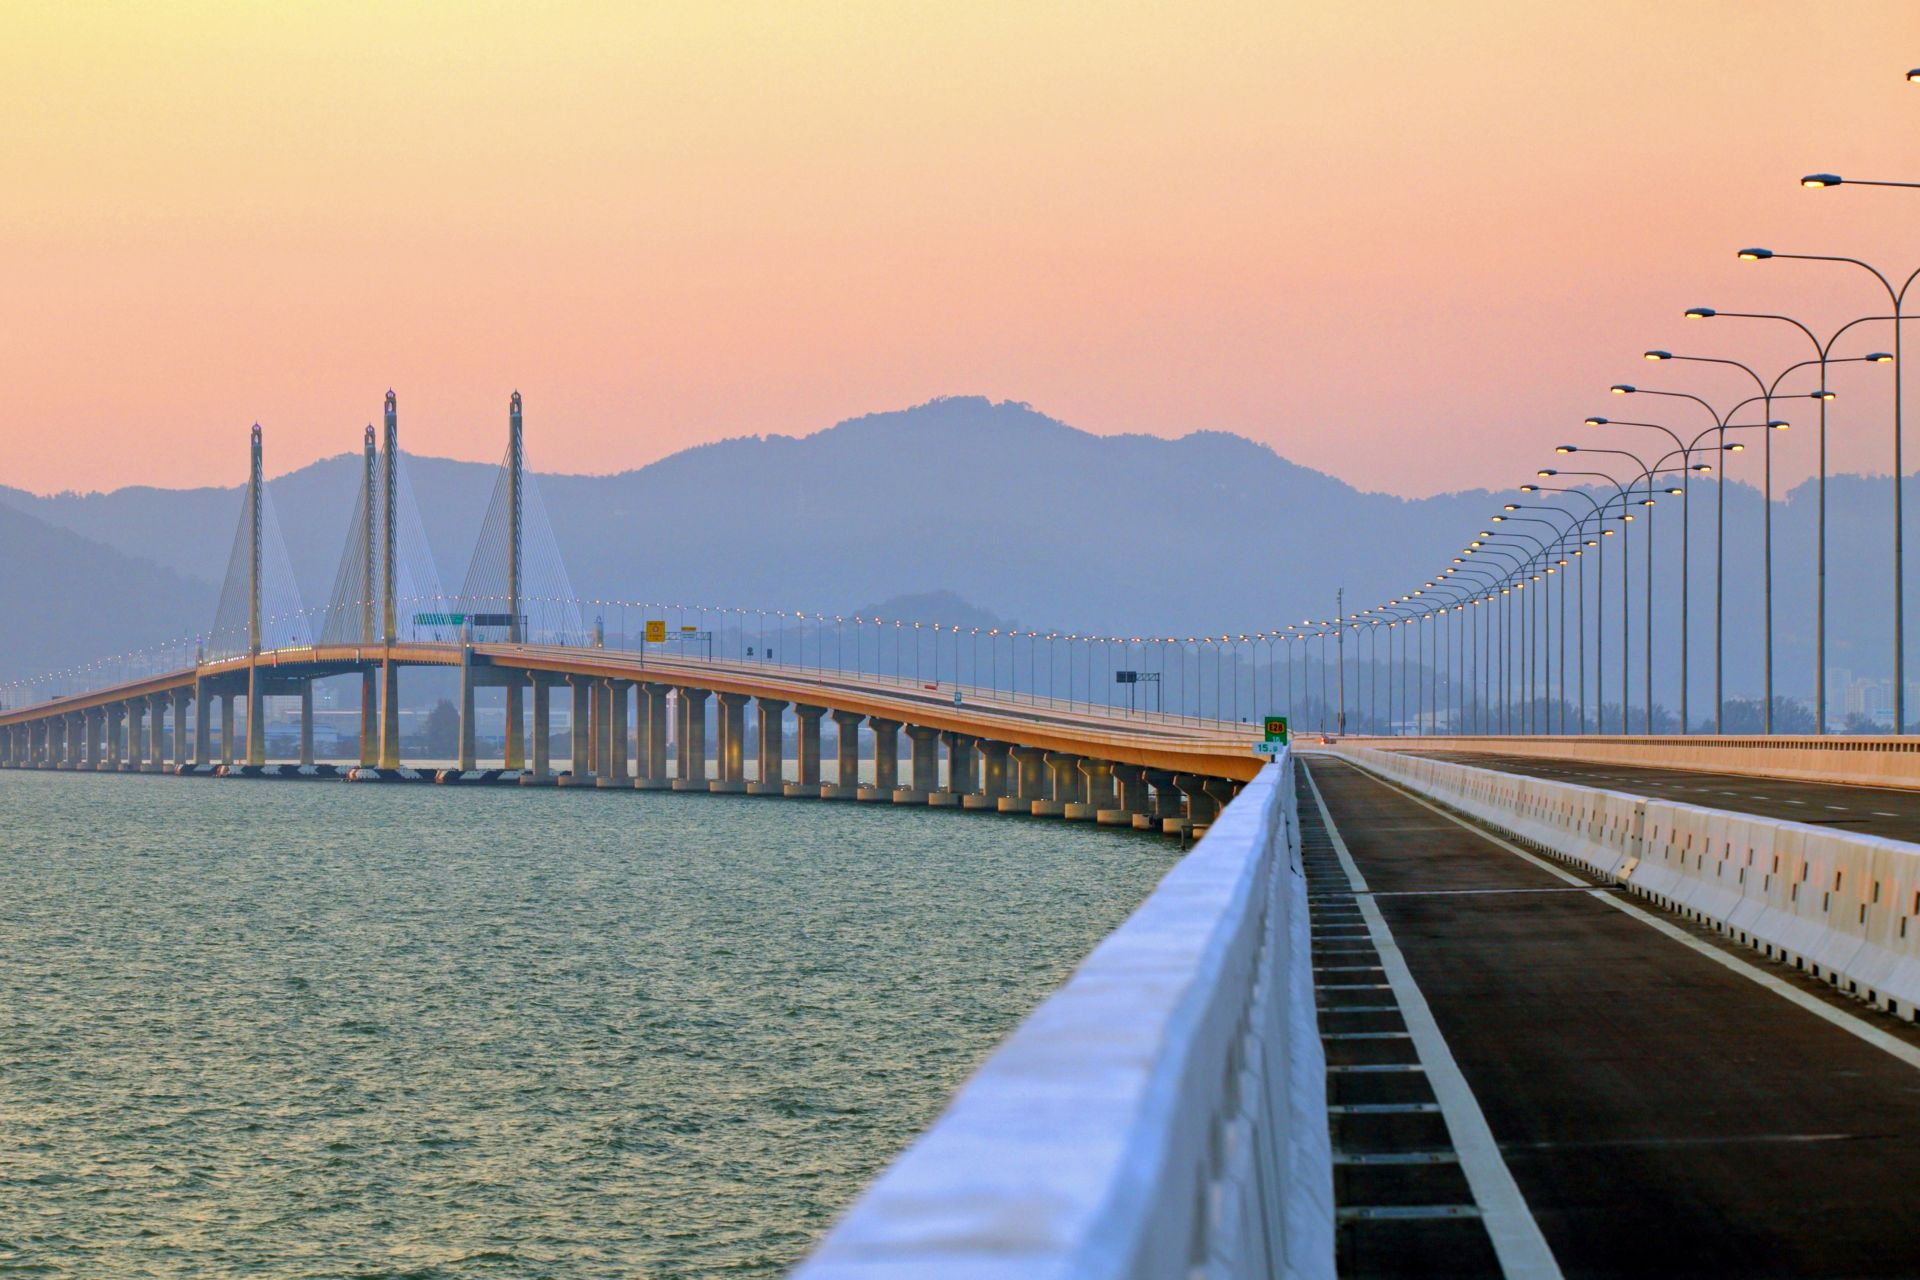 Second Penang Bridge in Malaysia at sunset